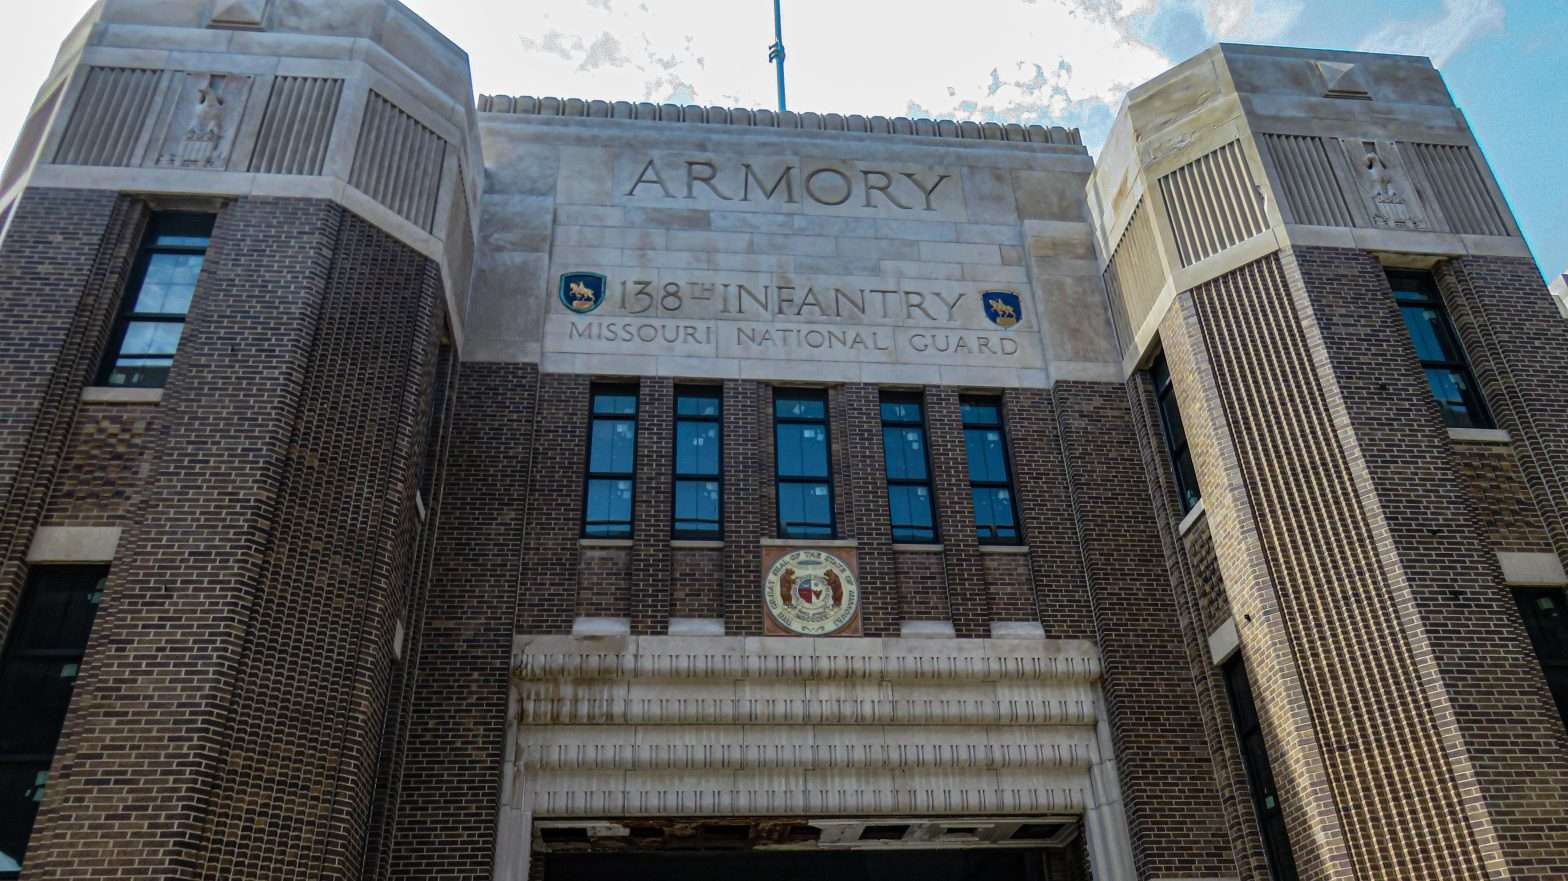 Armory National Guard building in St. Louis. credit craig currie